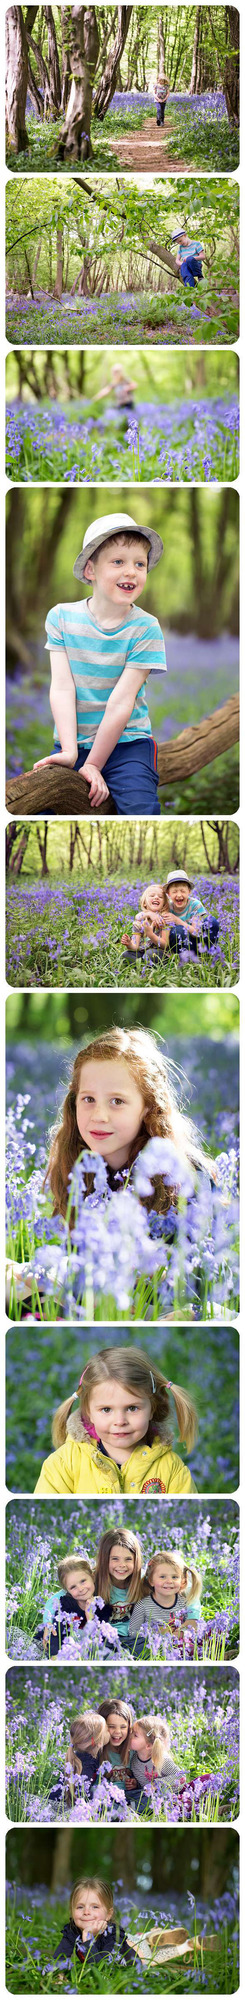 hotos of children in the bluebells in Heartwood Forest just outside of St Albans